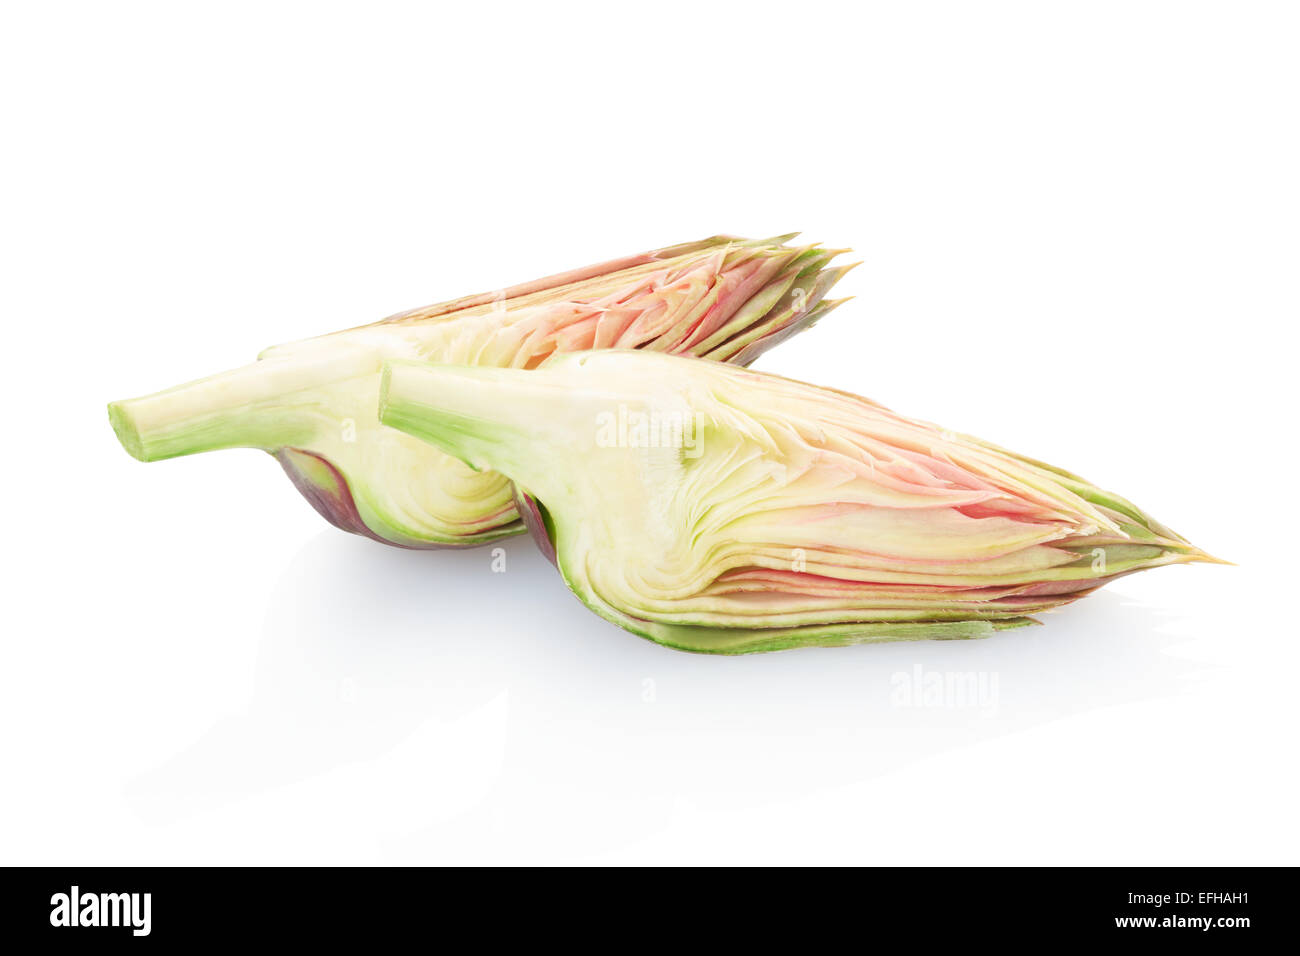 Artichoke pieces - Stock Image